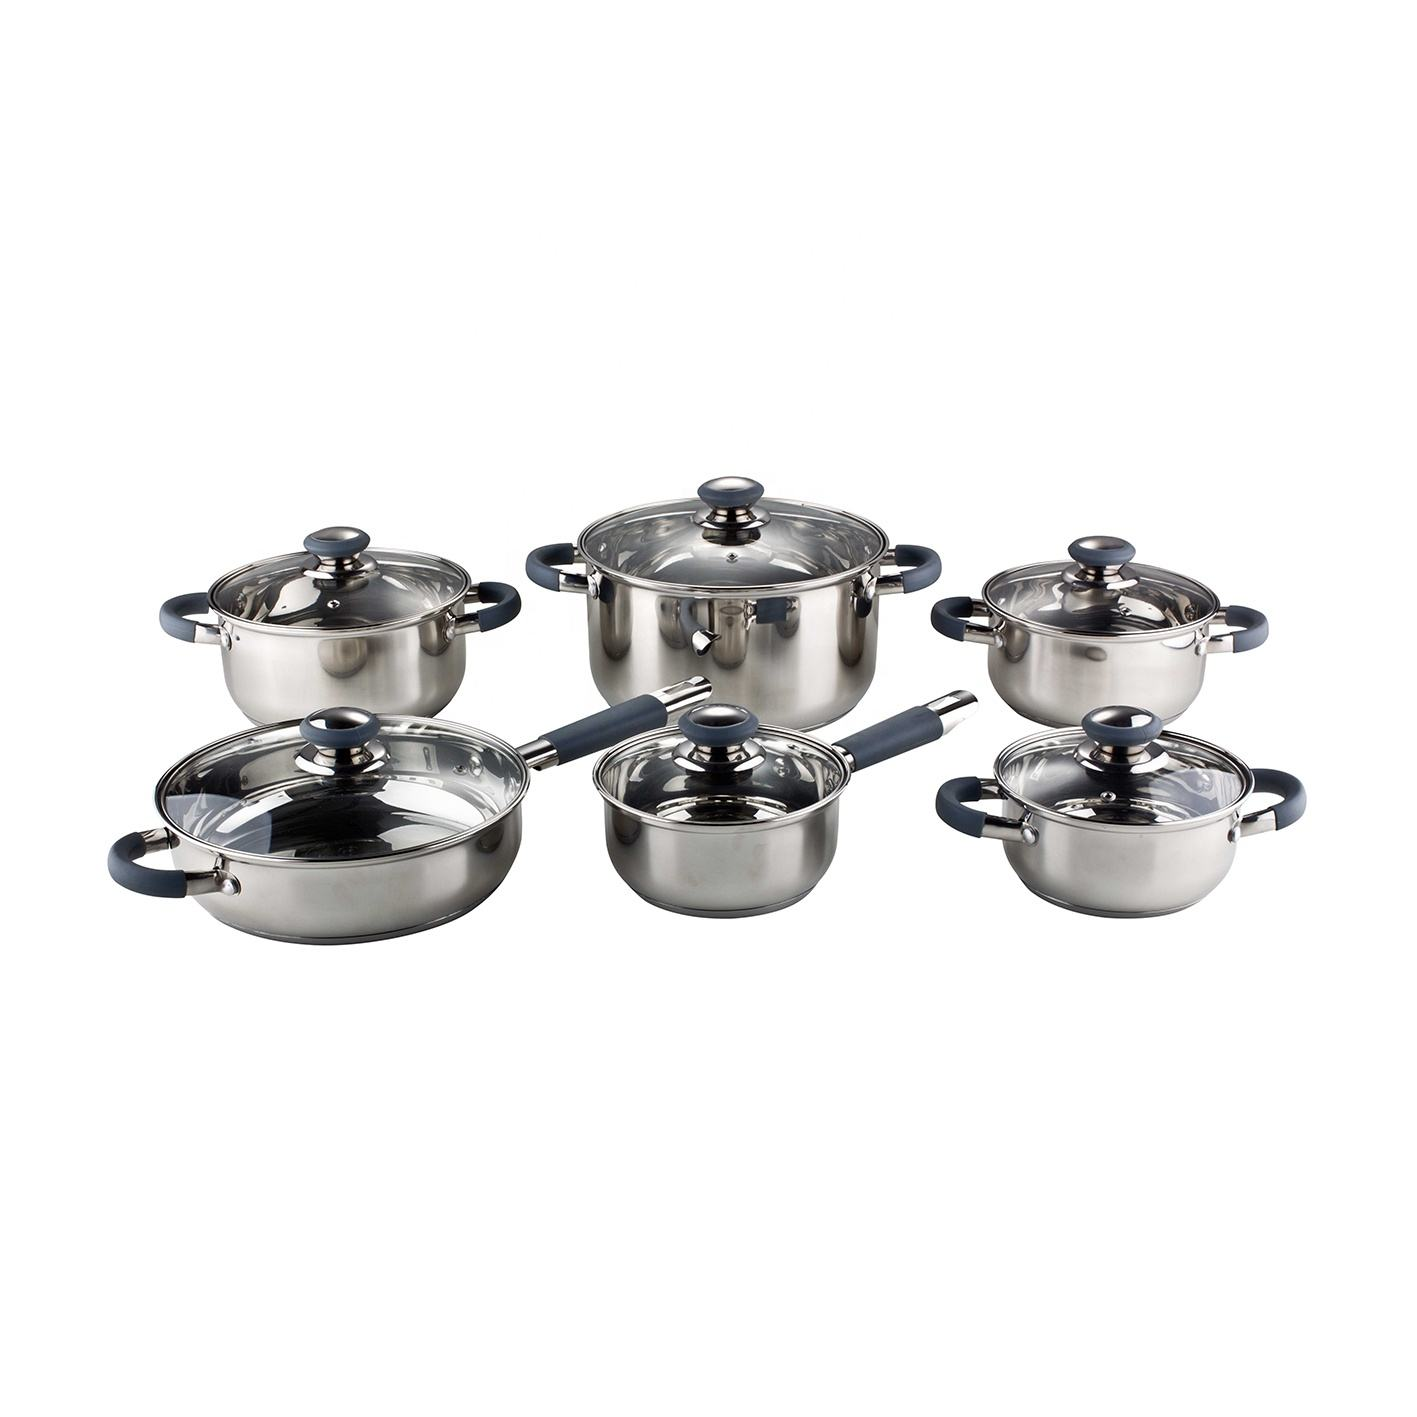 12 pcs Stainless Steel Cookware Set with Glass Lid Cookware Set for Induction Cooker New Saucepan and Casserole